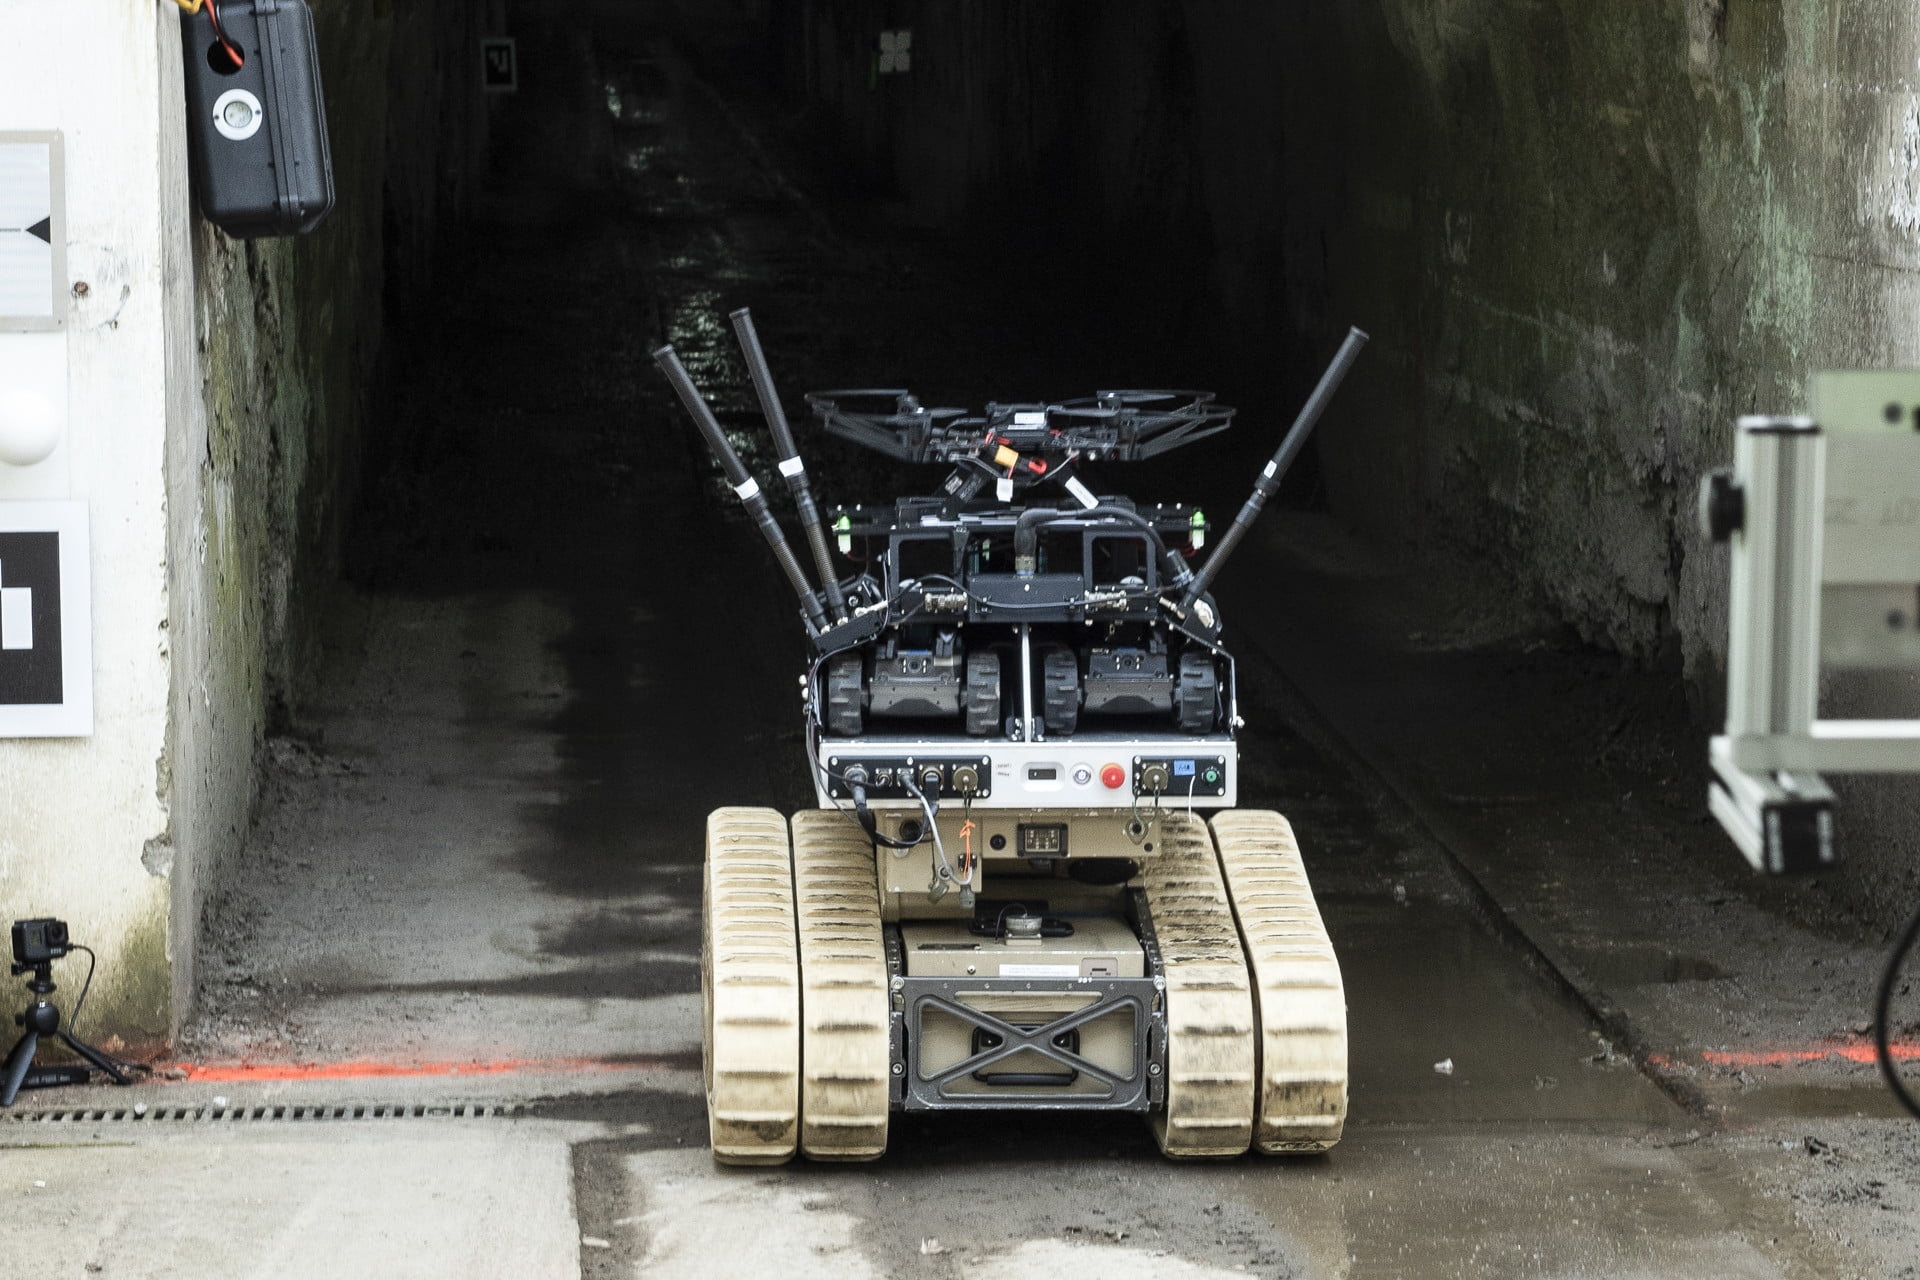 DARPA is sending robots underground to teach them to save lives